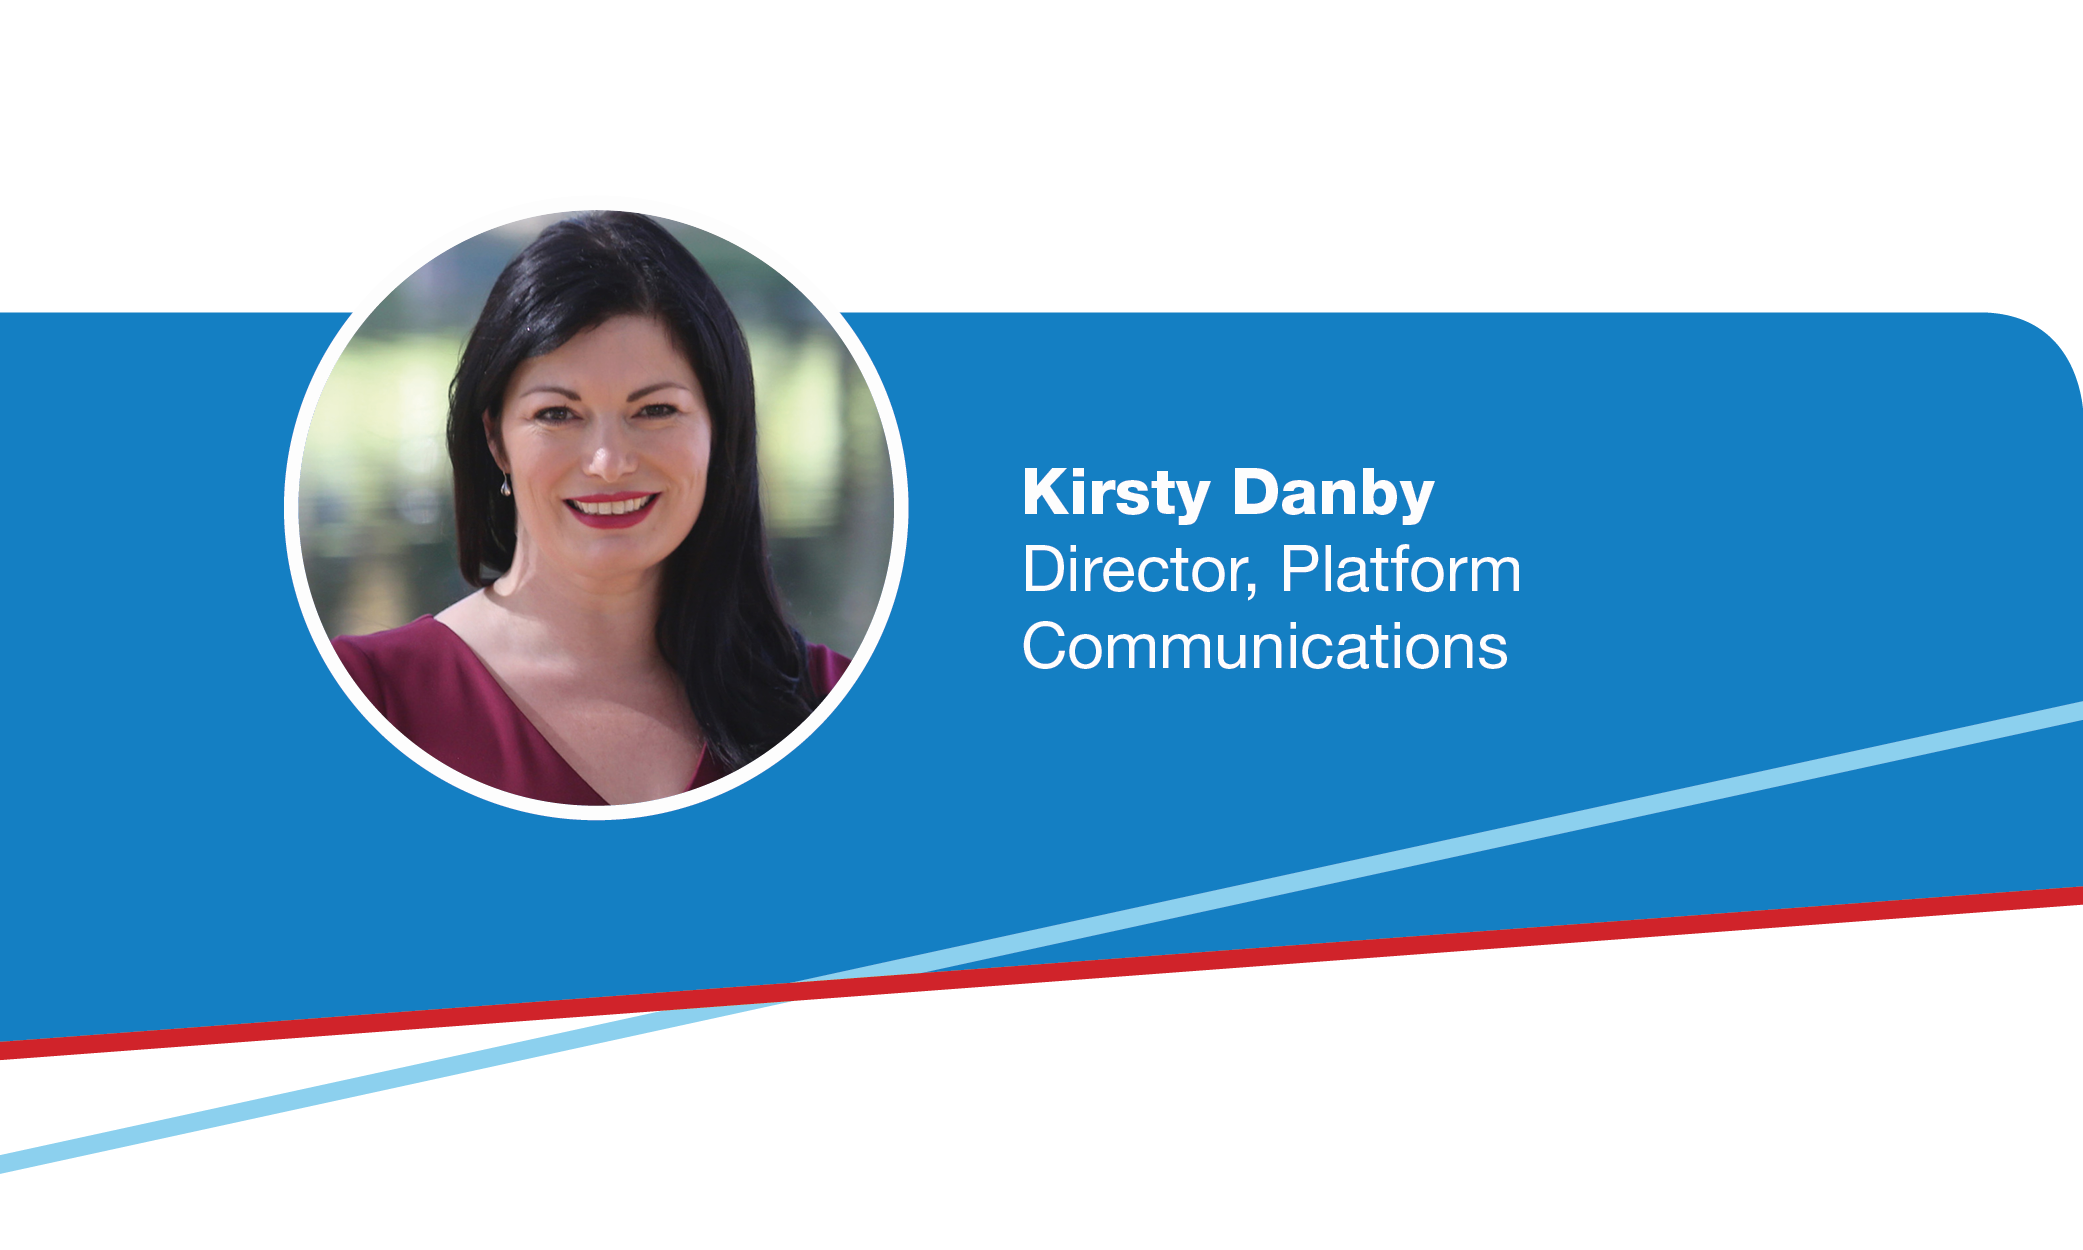 Join Platform's Director Kirsty Danby at IMARC 2018